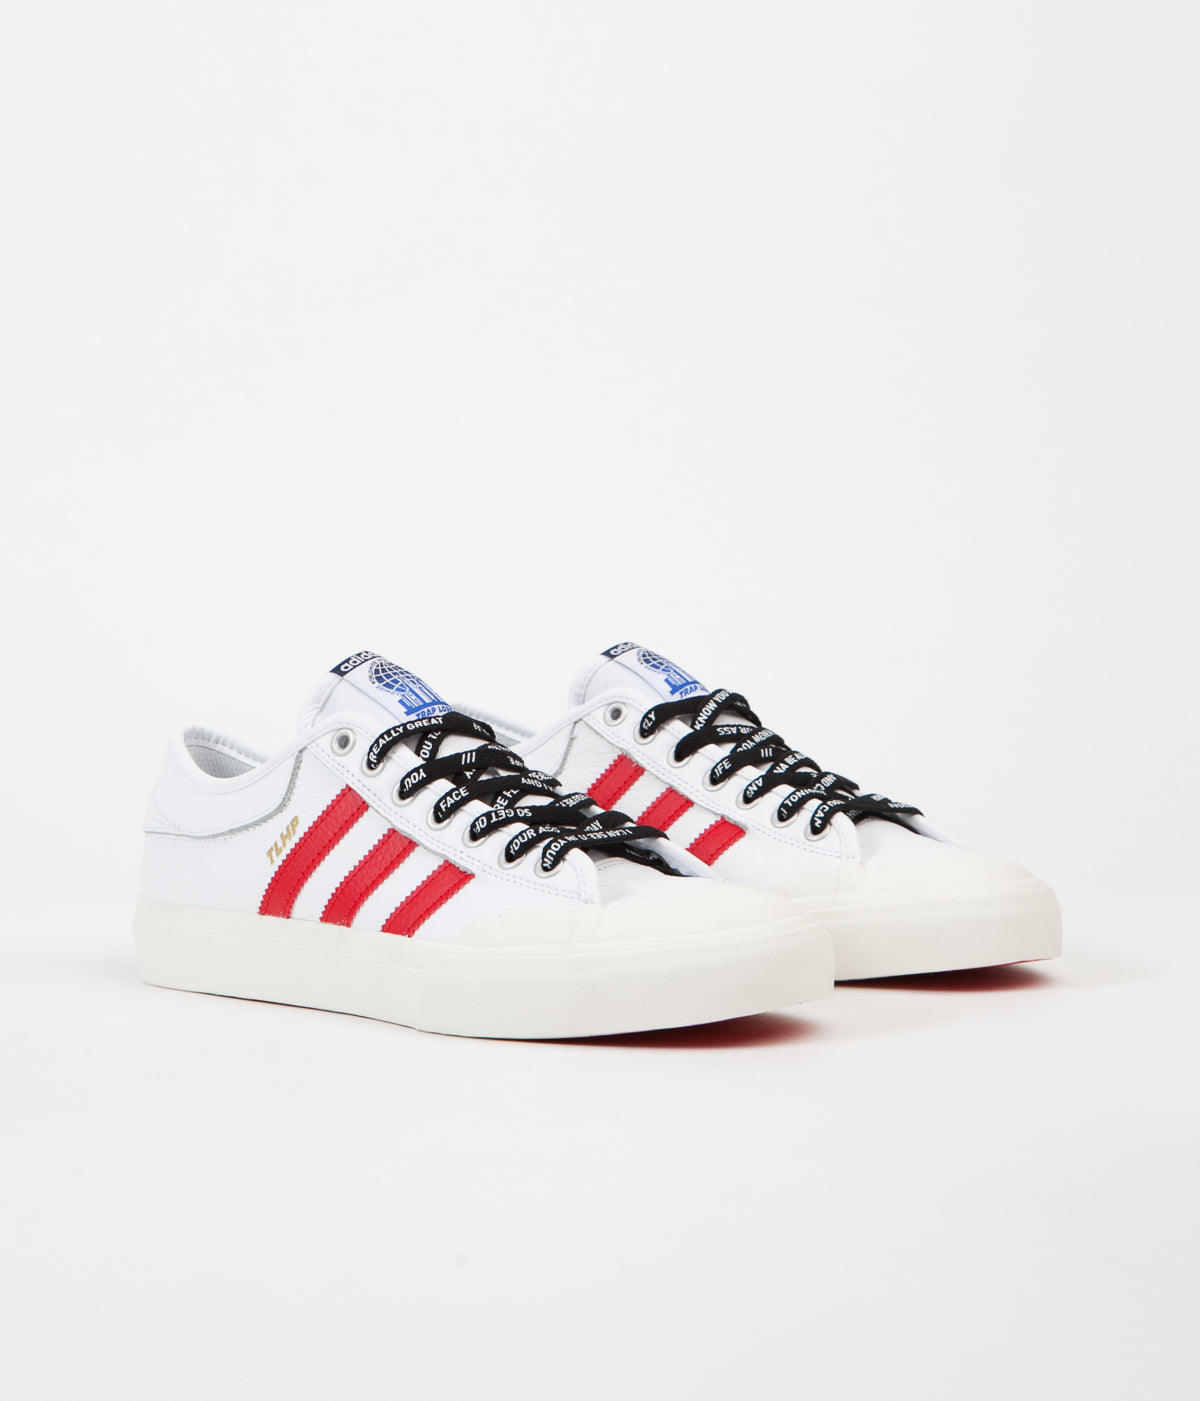 2c7207d1532 ... Adidas x Trap Lord Ferg Matchcourt Shoes - White   Scarlet ...